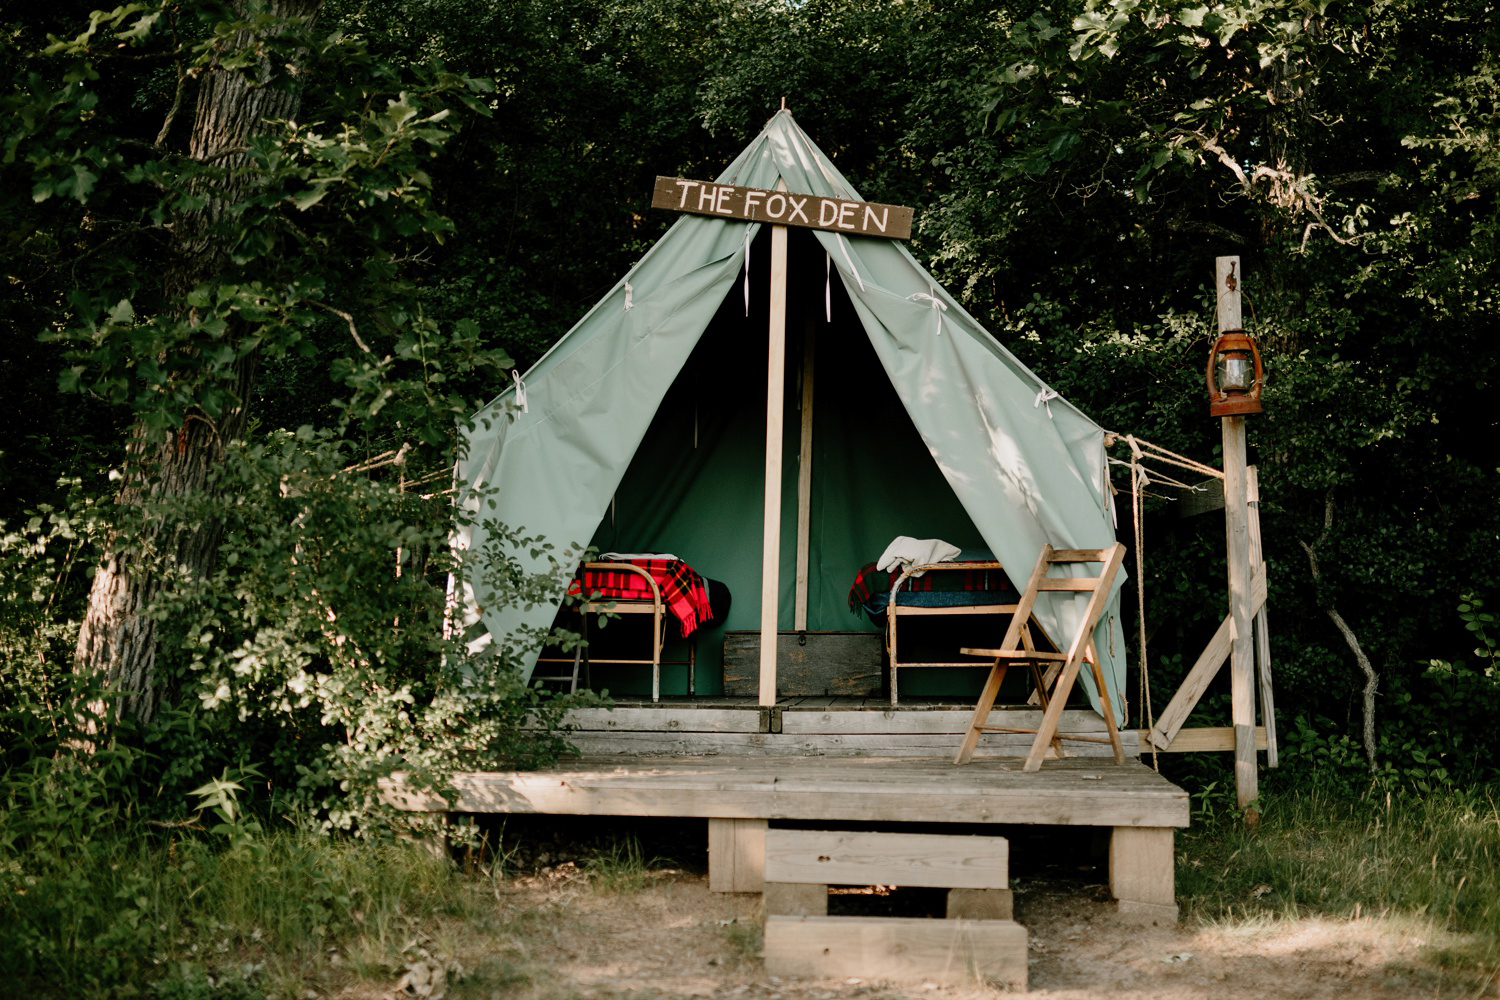 the fox den vintage tent